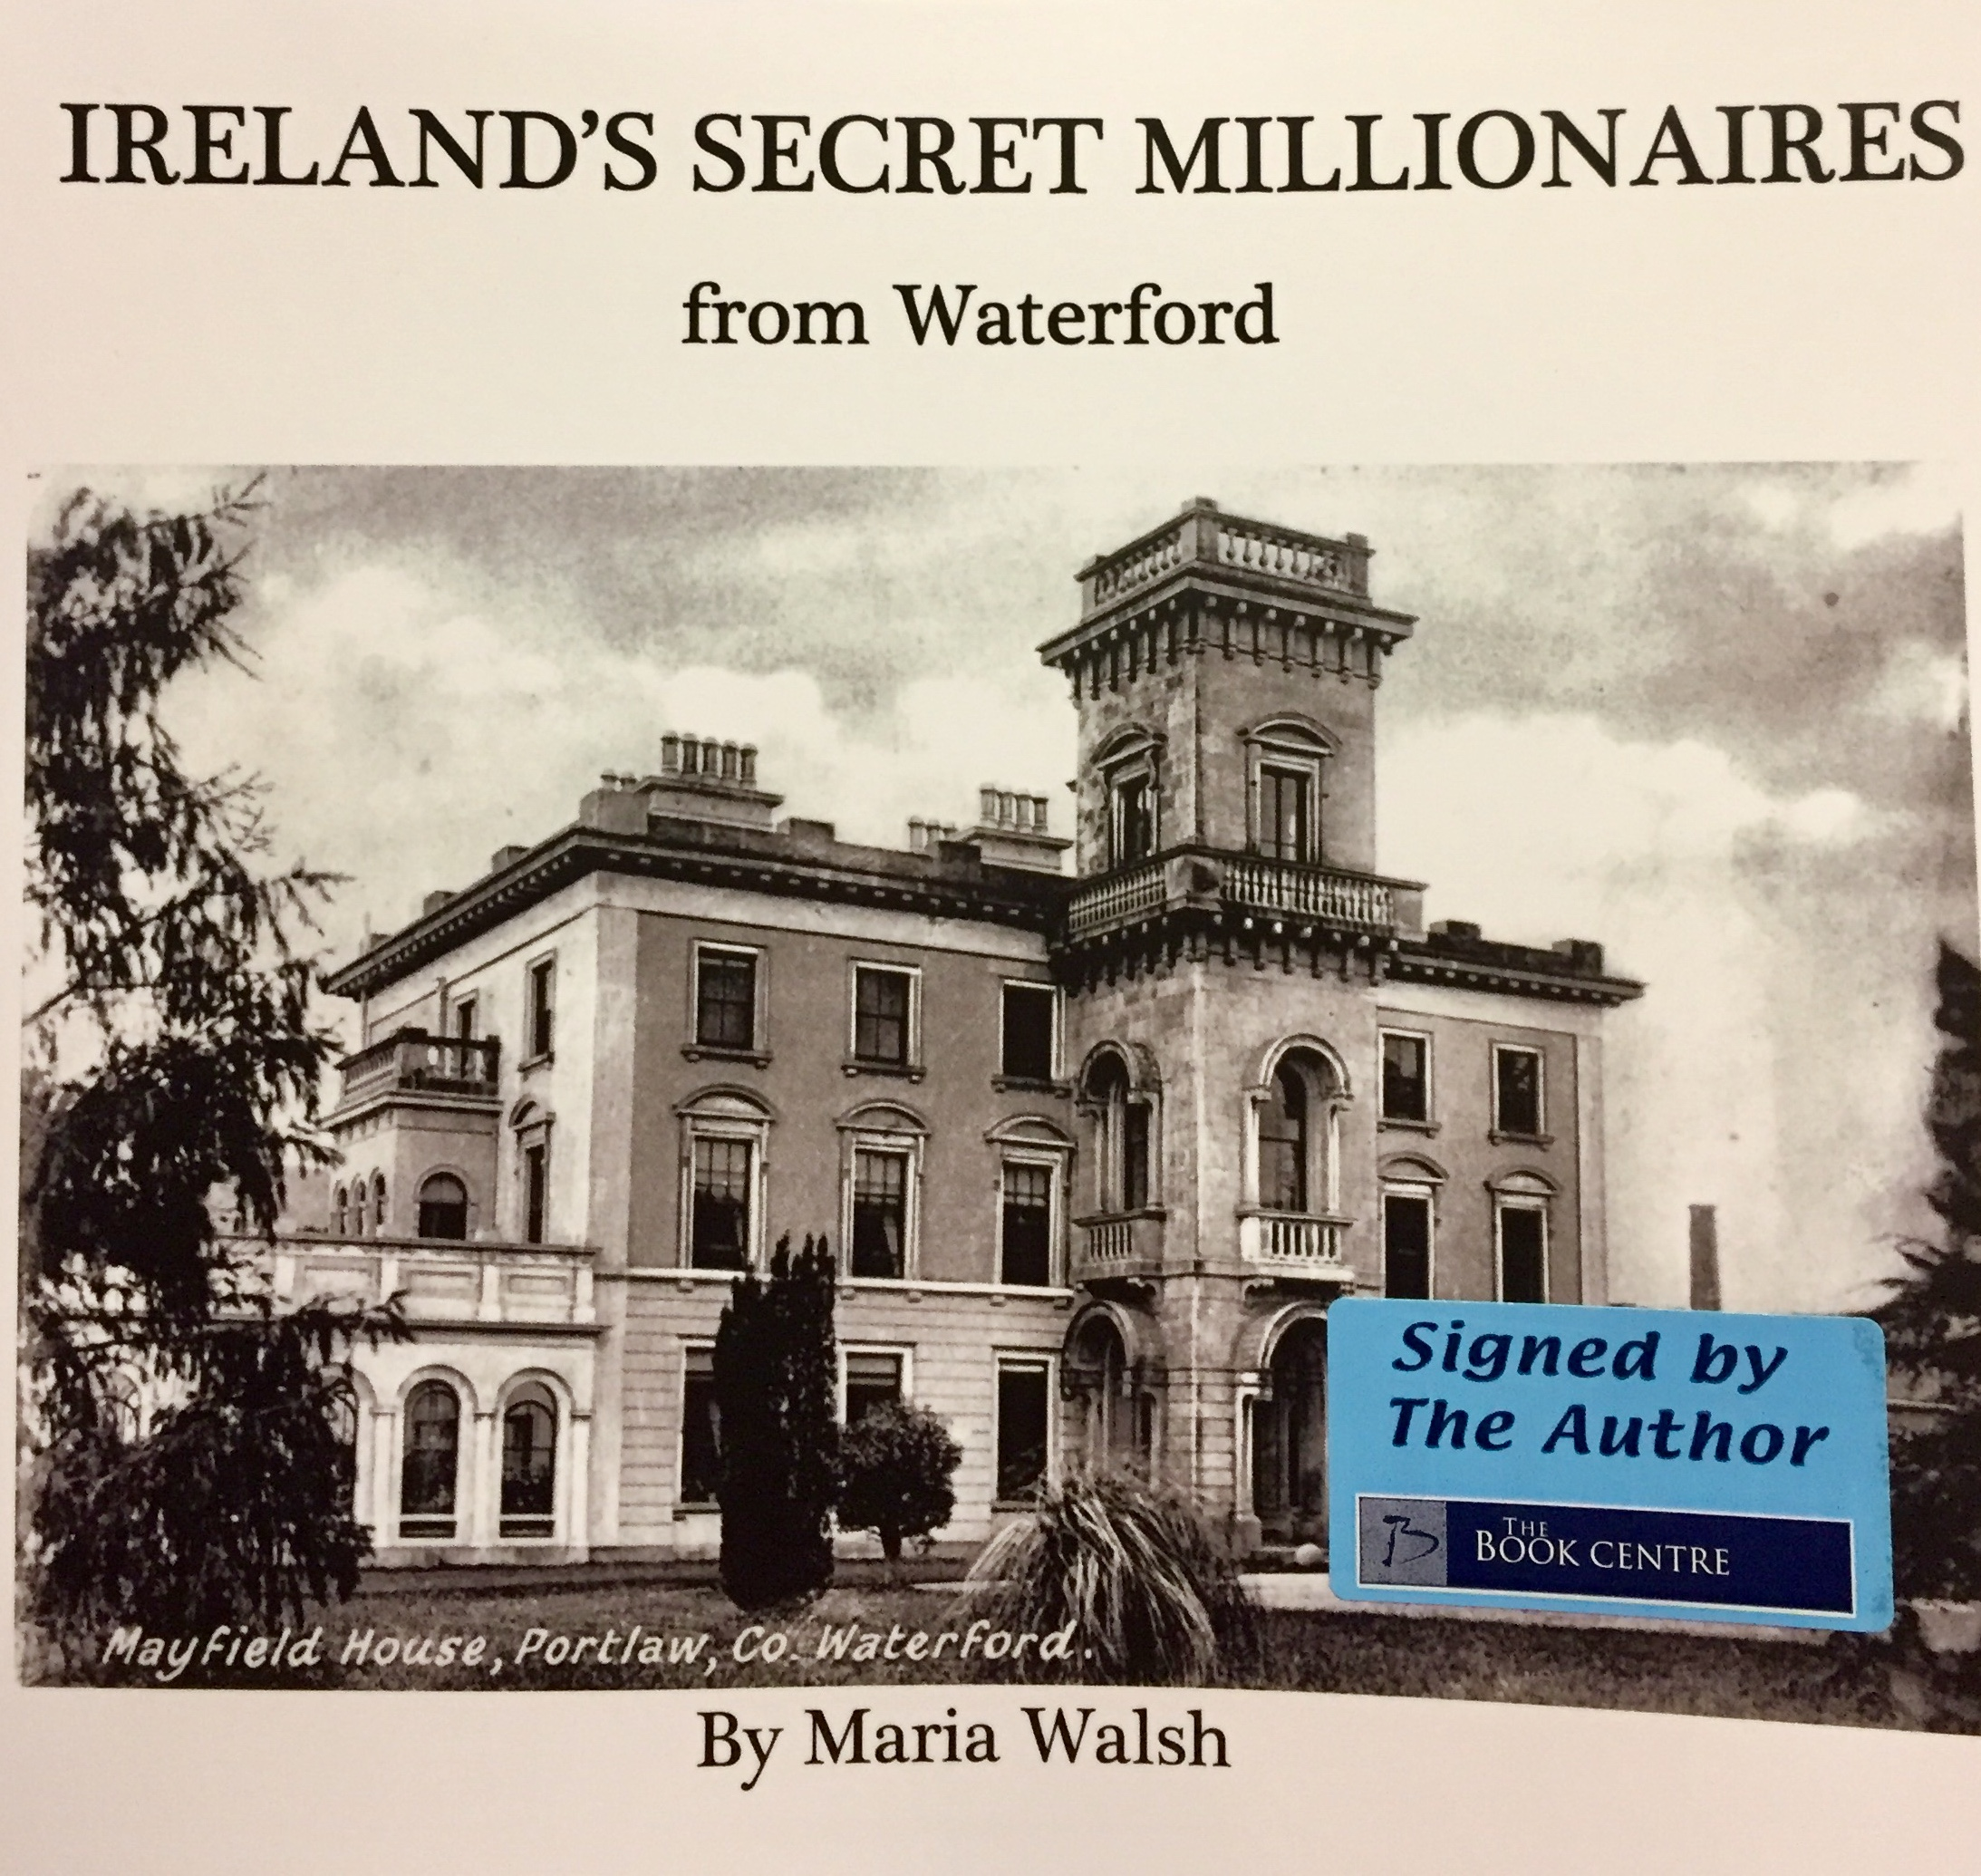 Ireland's Secret Millionaires from Waterford